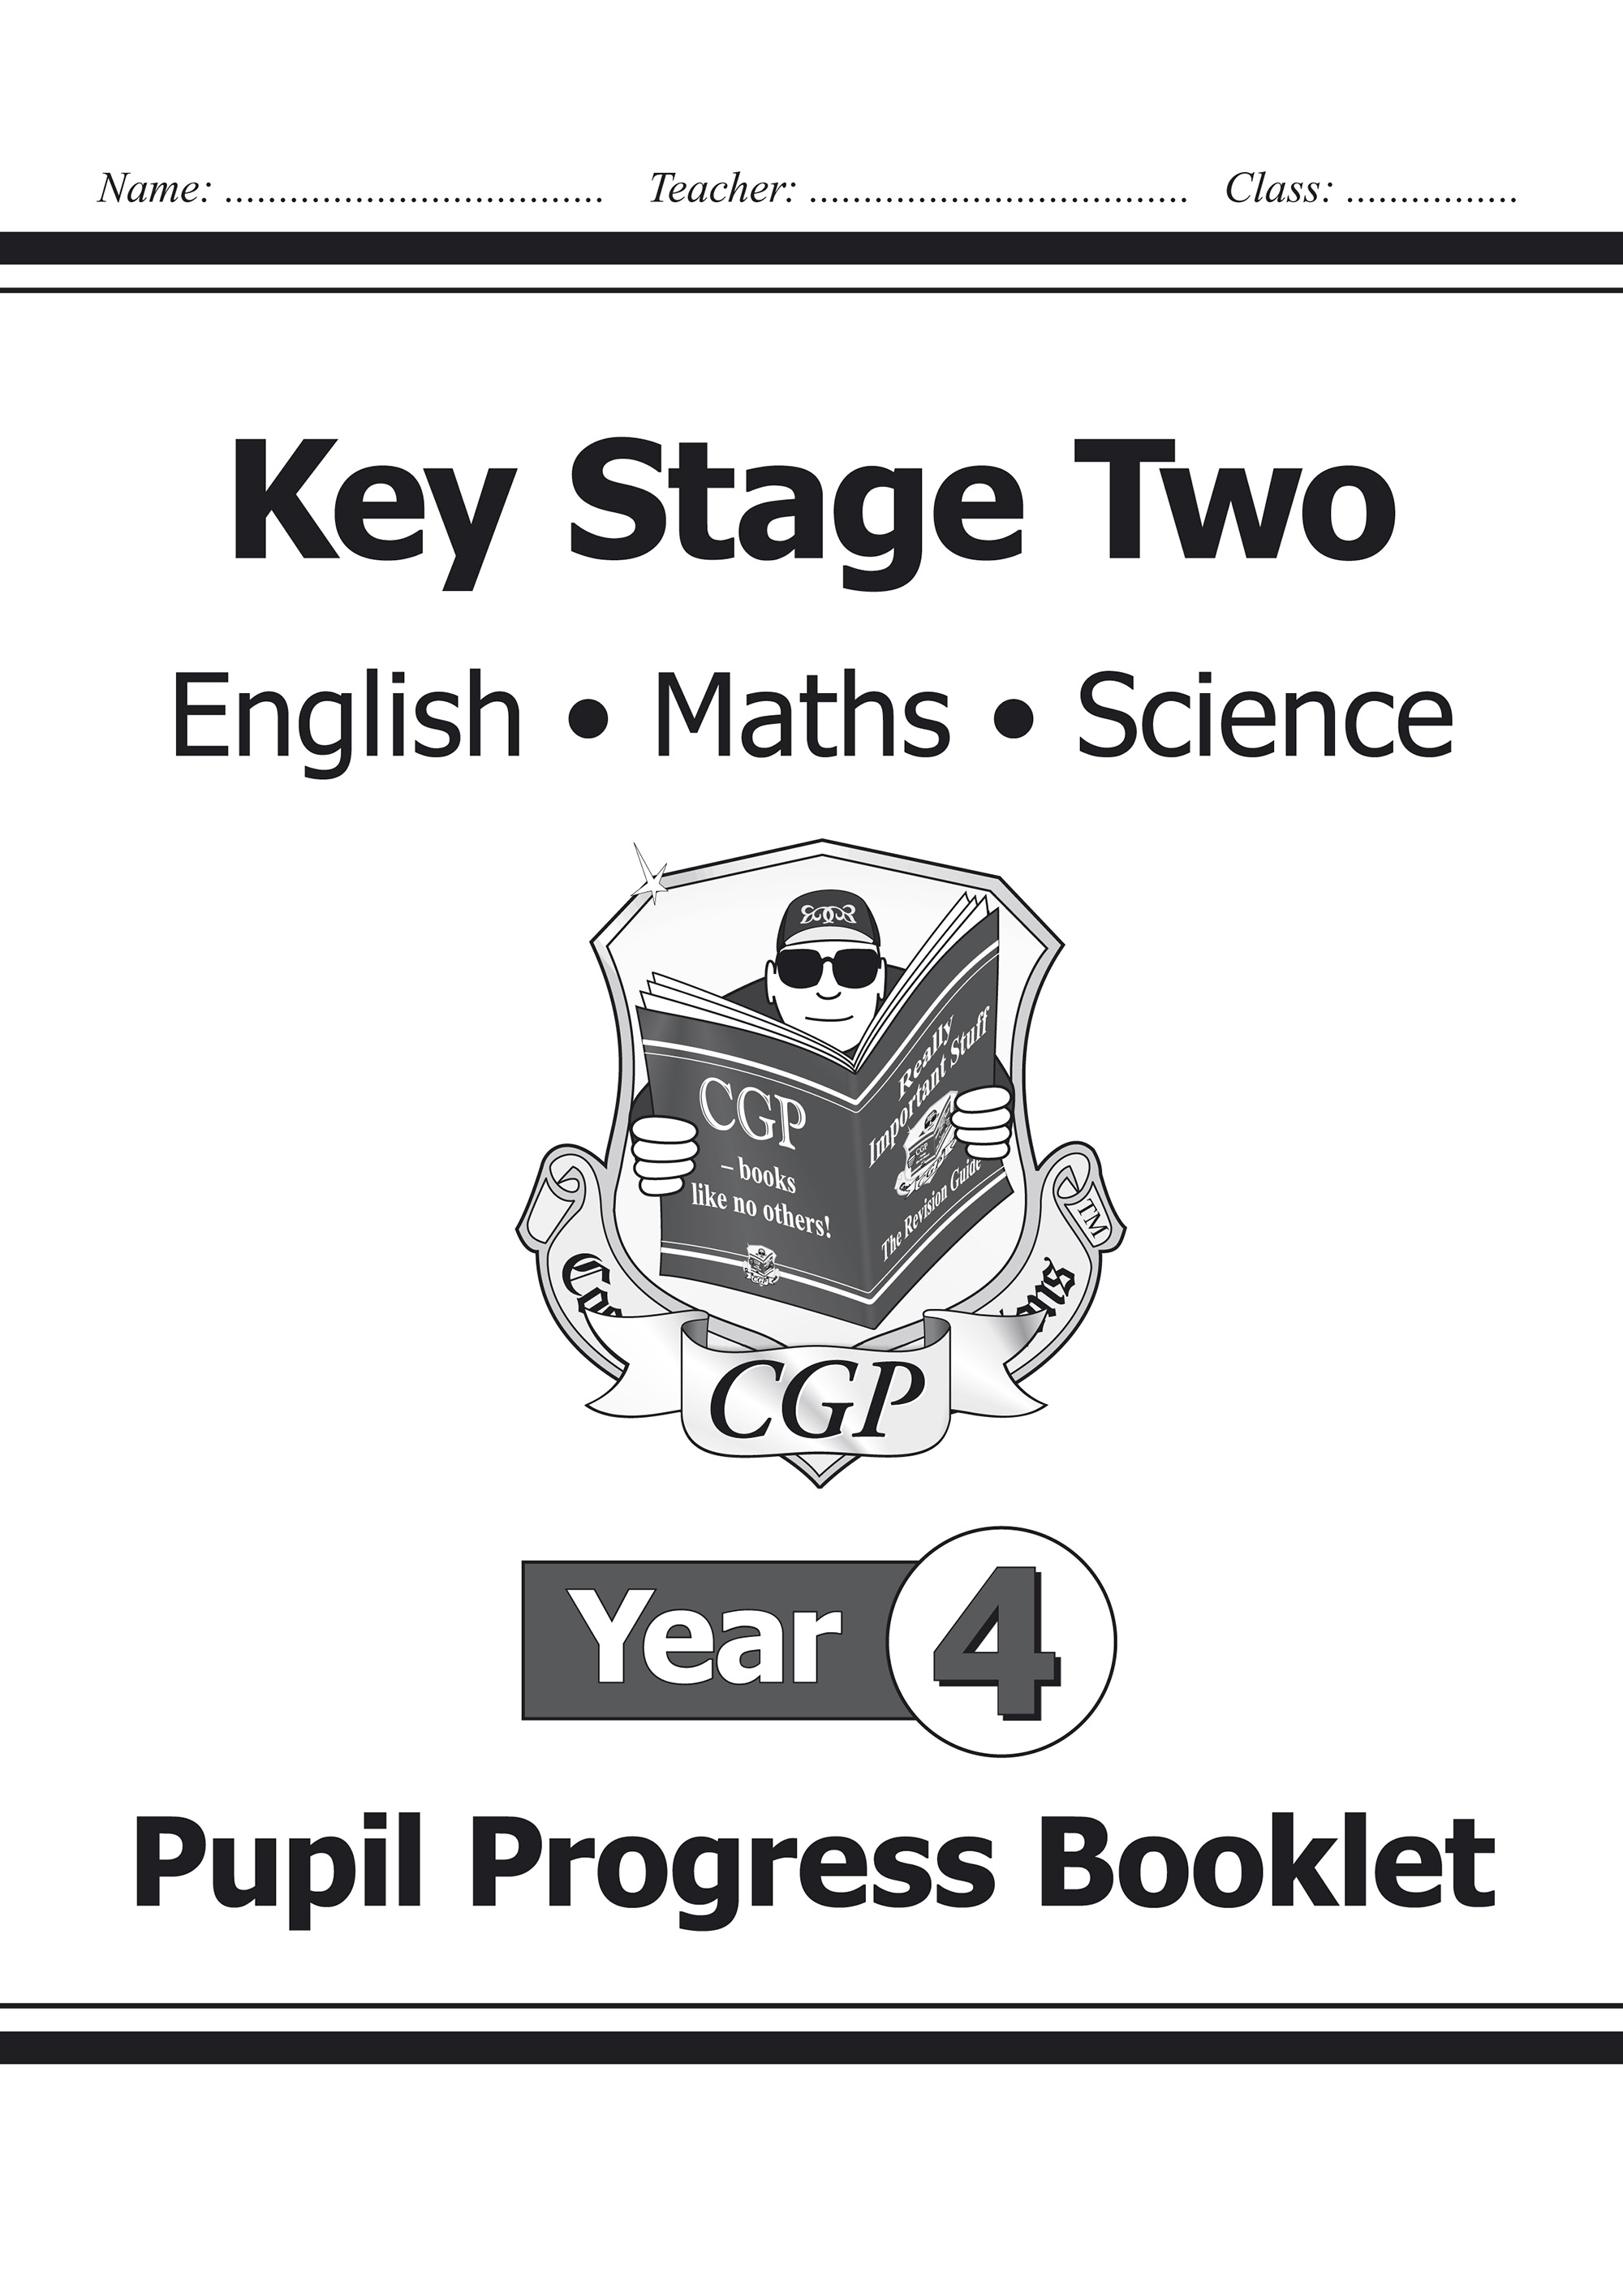 SME4P21 - KS2 Pupil Progress Booklet for English, Maths and Science - Year 4